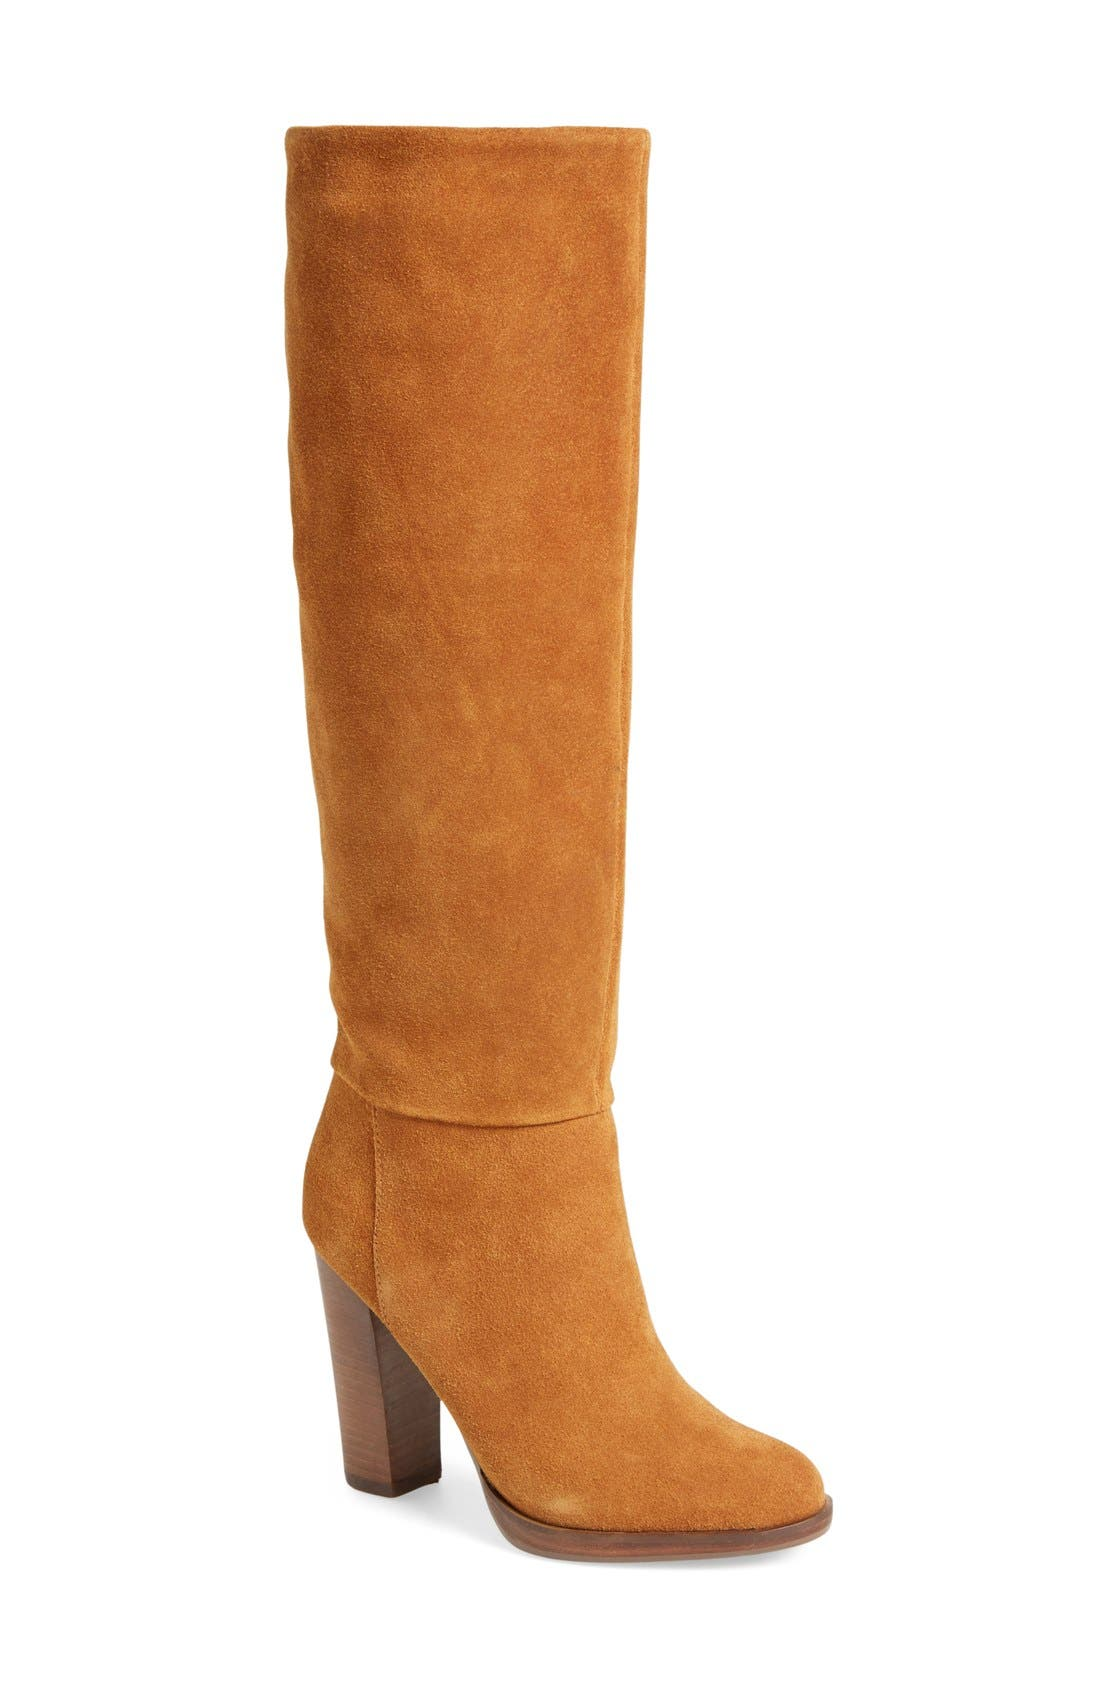 Main Image - REPORT Signature 'Lannister' Tall Boot (Women)